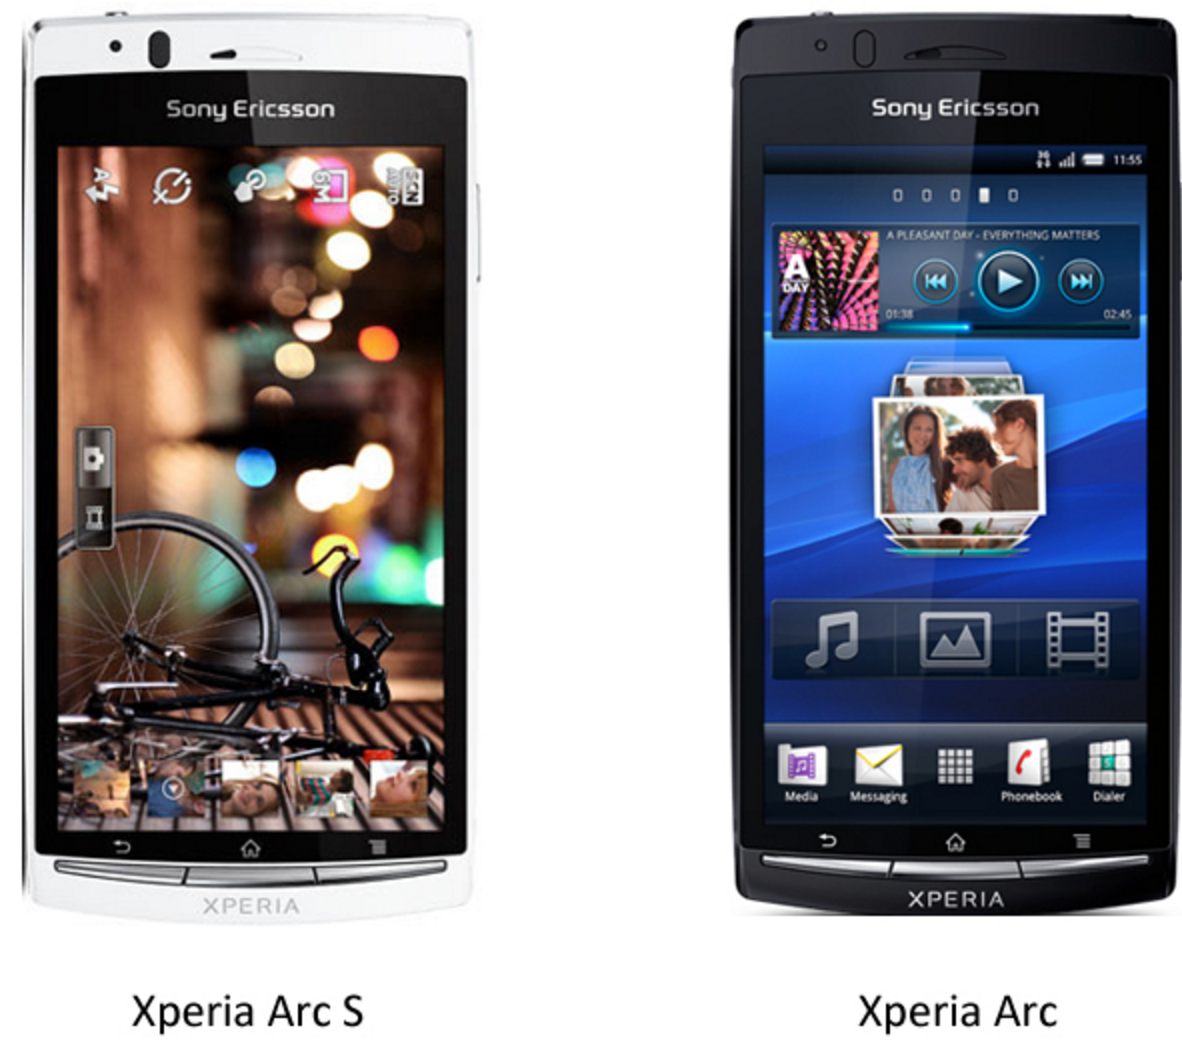 XPERIA ARC S ADB DRIVERS UPDATE